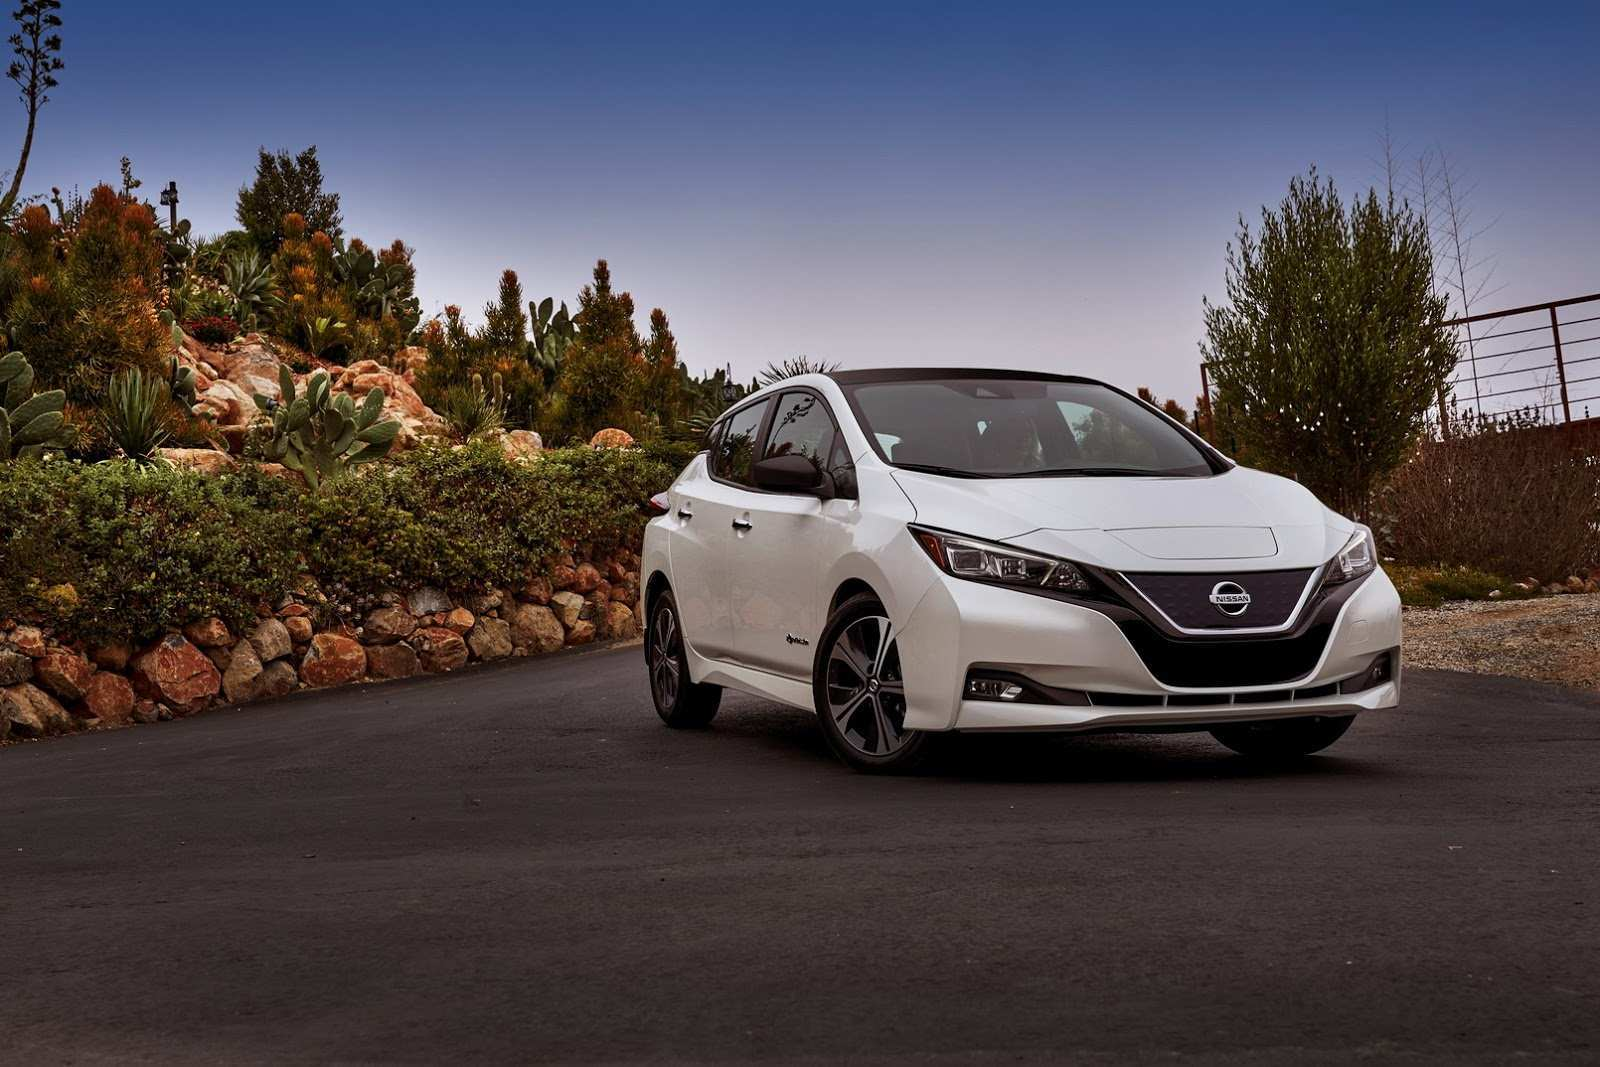 56 Gallery of 2020 Nissan Leaf 60 Kwh Battery Reviews with 2020 Nissan Leaf 60 Kwh Battery